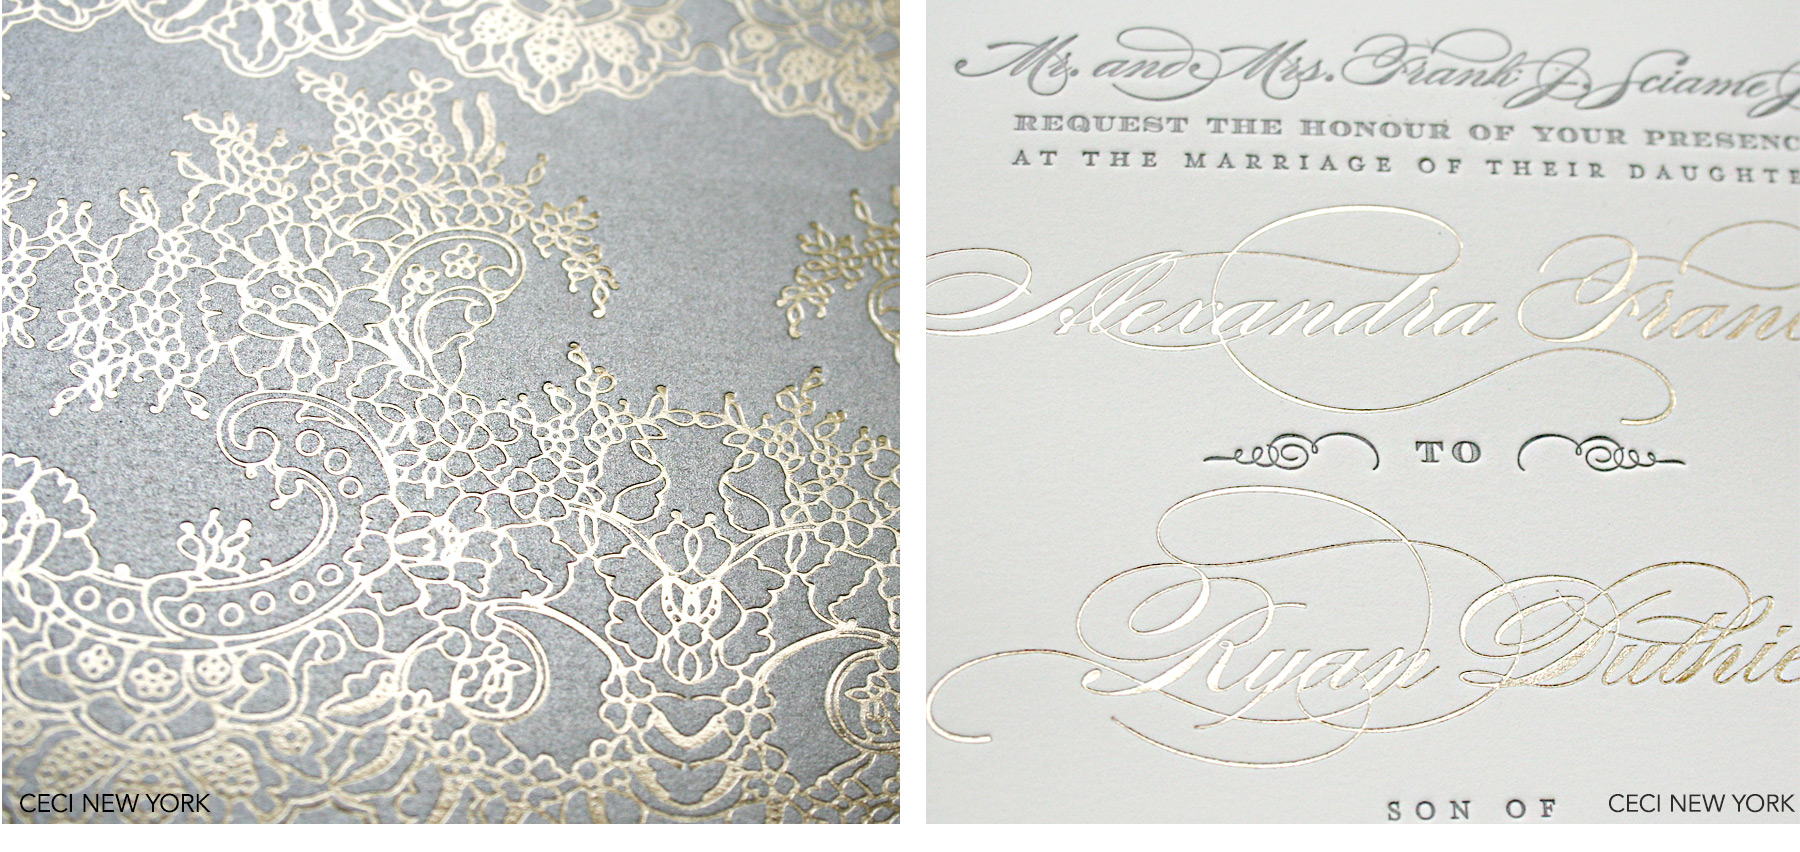 Luxury Wedding Invitations by Ceci New York - Our Muse - Urban Elegance - Be inspired by Alexandra and Ryan's elegant wedding on Wall Street in New York City. - Ceci New York Luxury Wedding Invitations - custom wedding invitations, luxury wedding invitations, couture, ceci new york, wall street, new york city